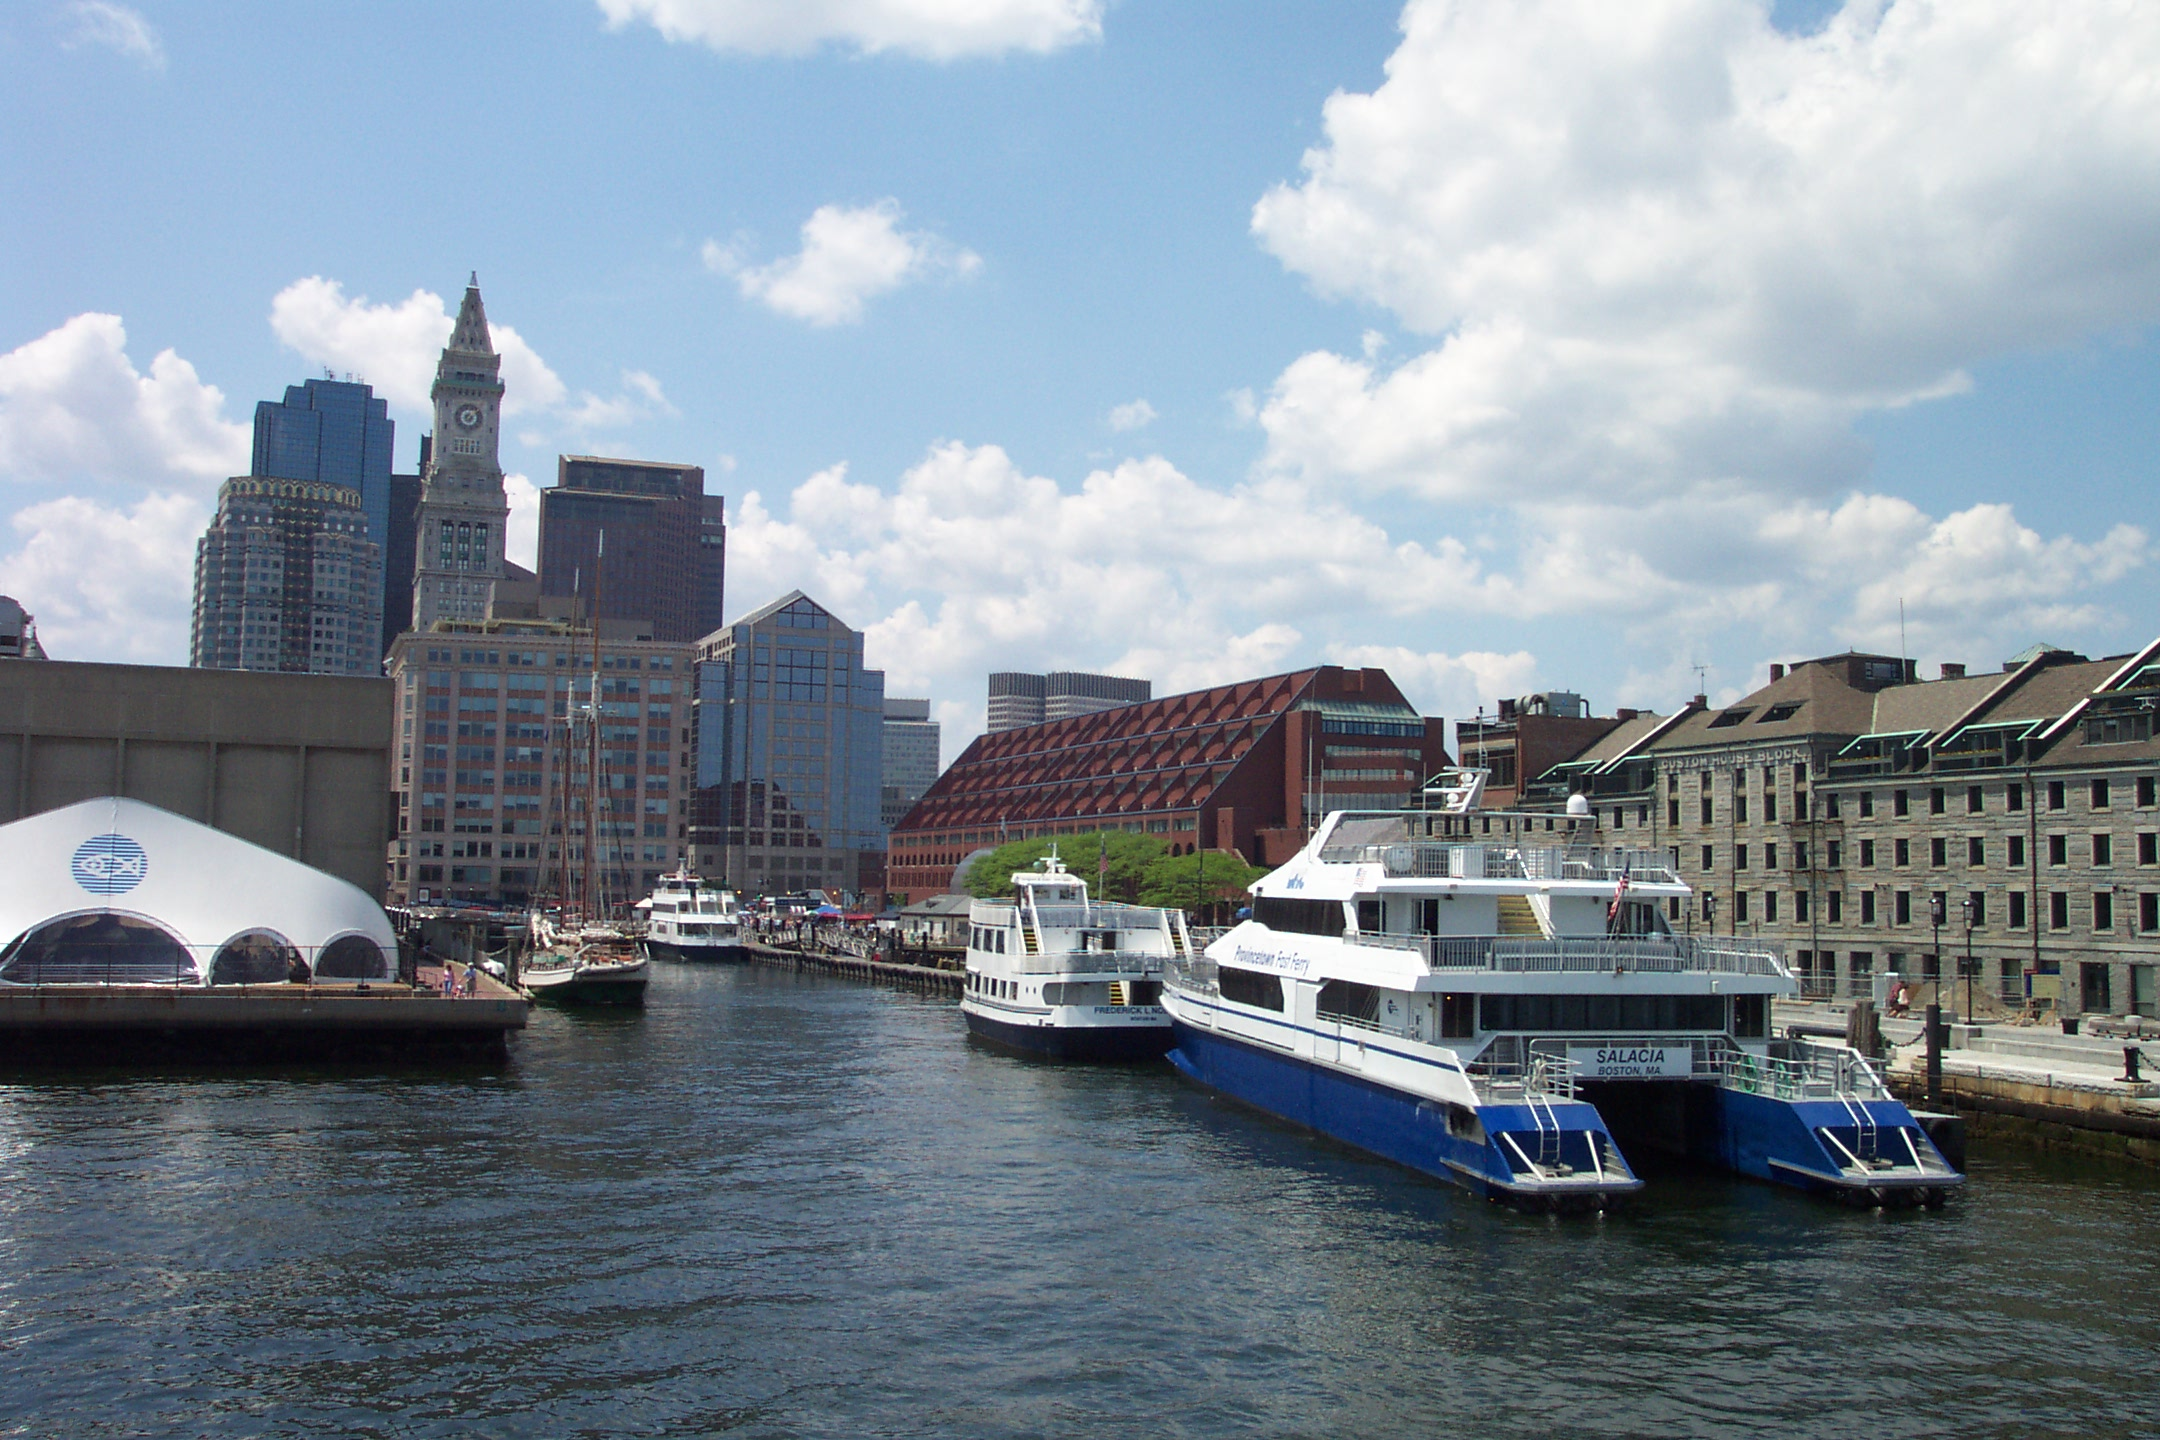 File:Boston Long Wharf.JPG - Wikimedia Commons